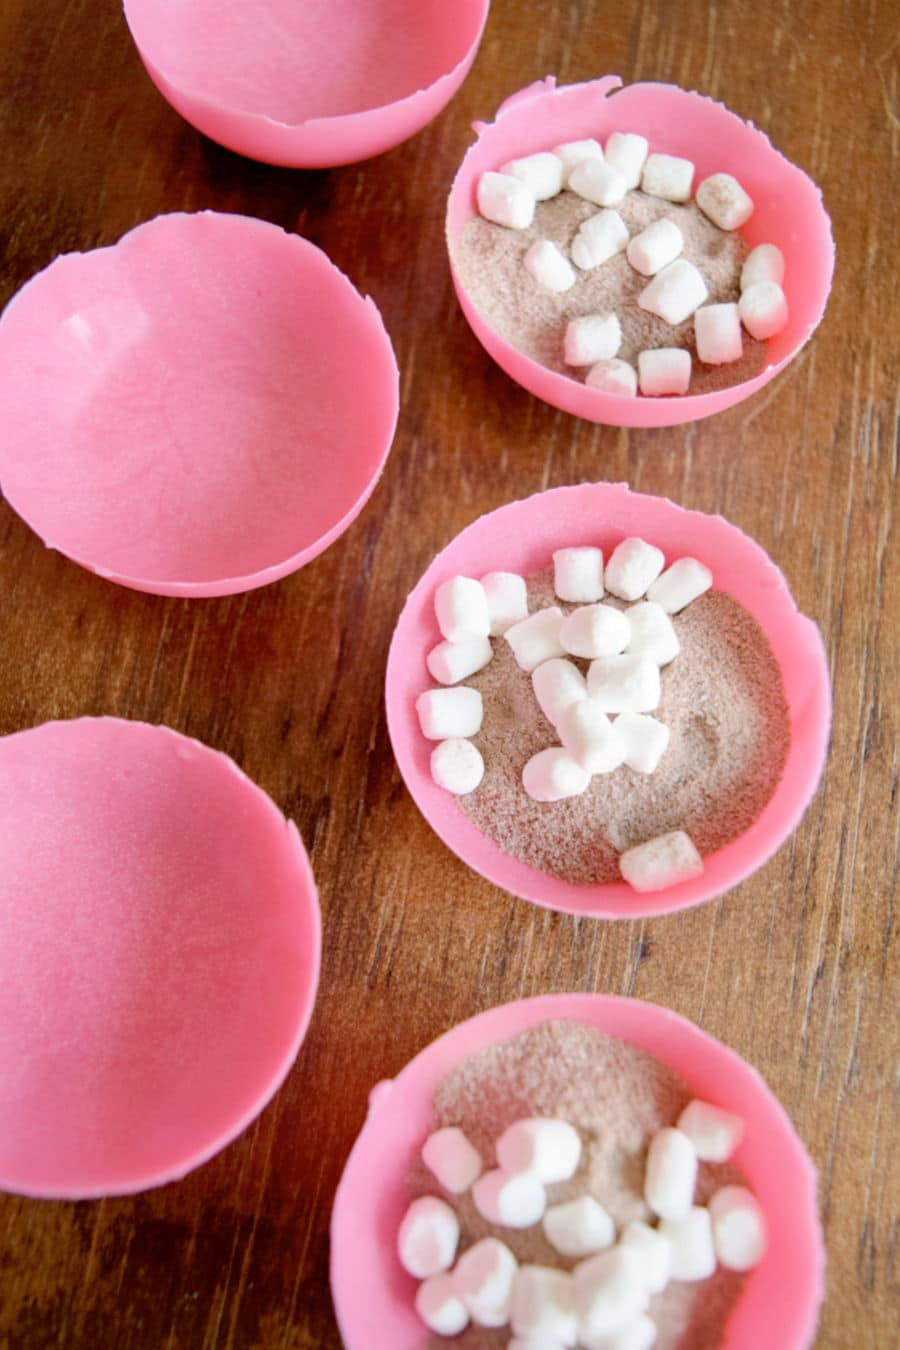 candy half-spheres filled with dry hot cocoa and marshmallows